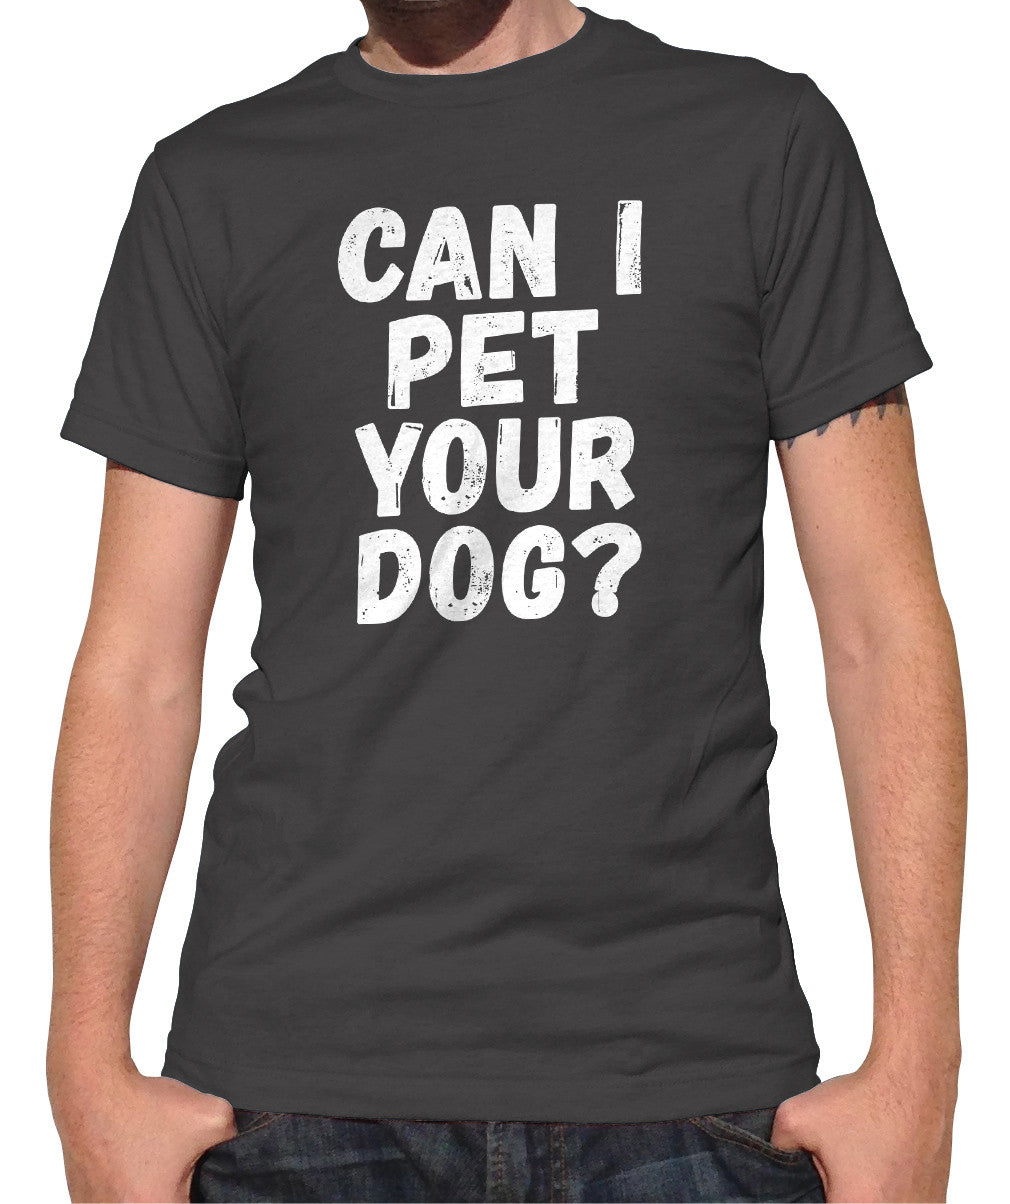 Men's Can I Pet Your Dog T-Shirt - Funny Dog Lover Shirt